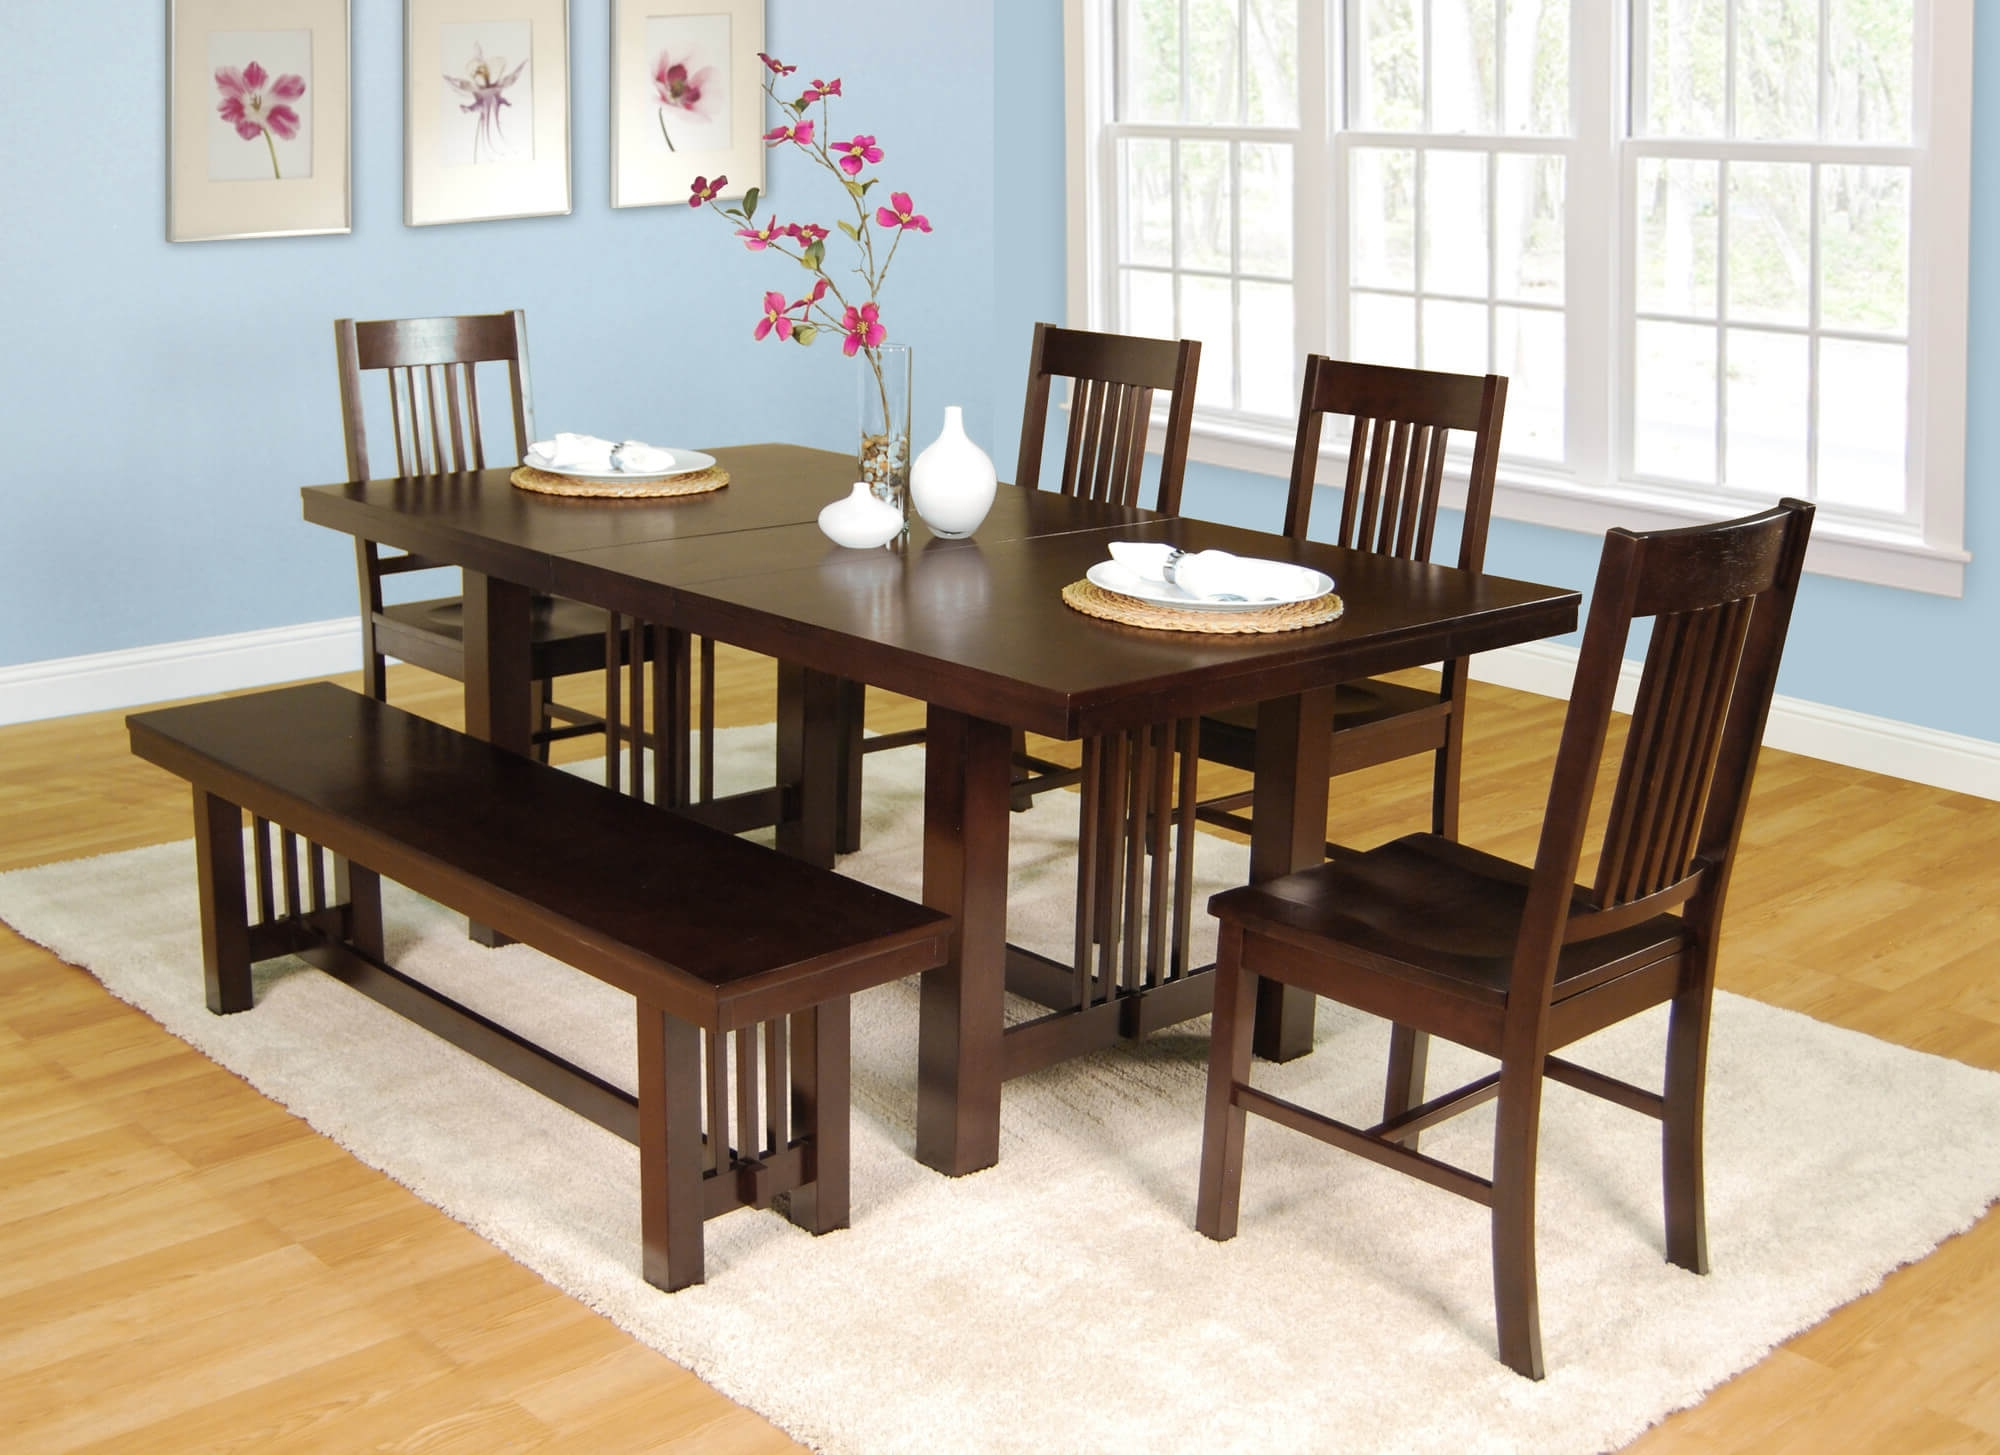 Popular Craftsman 9 Piece Extension Dining Sets Within Dining Room Sets At Sears — Bluehawkboosters Home Design (View 8 of 25)